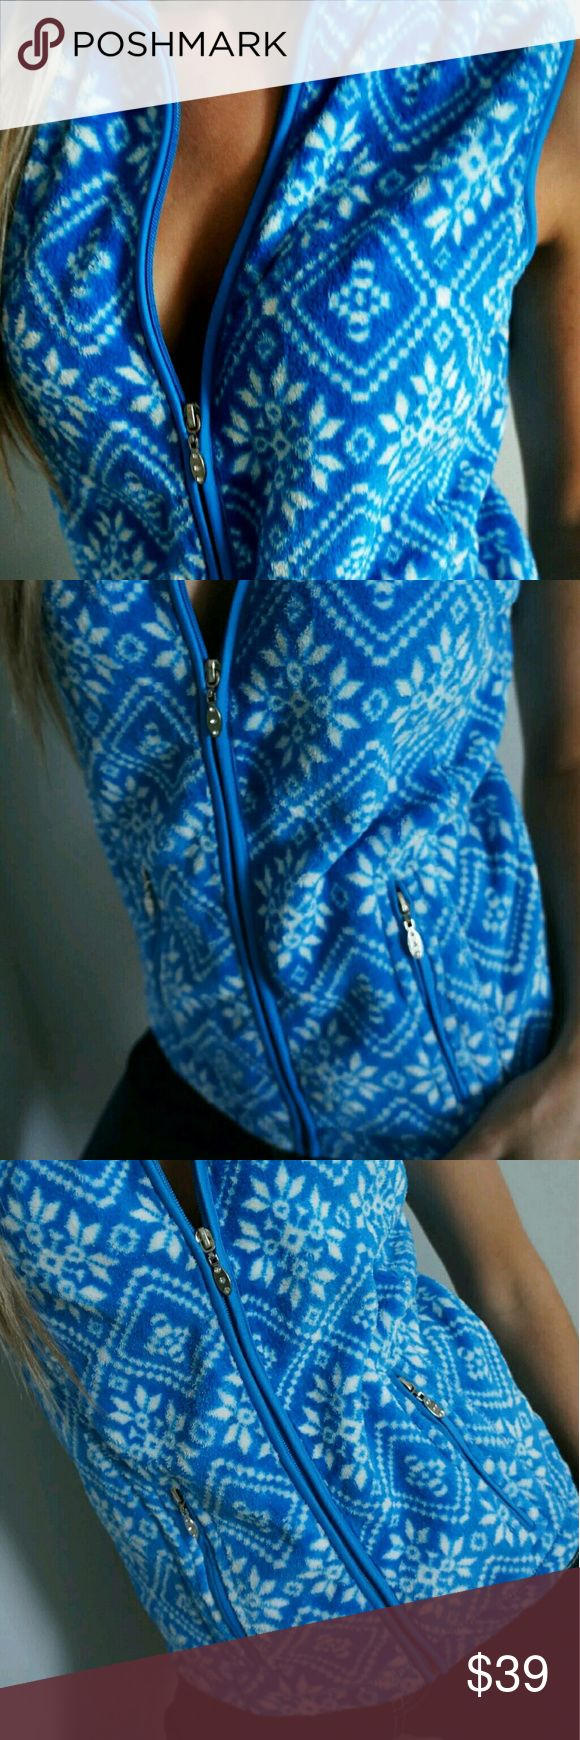 French Laundry, NWT Blue Vest Nwt Blue Vest Small French Laundry  Tops